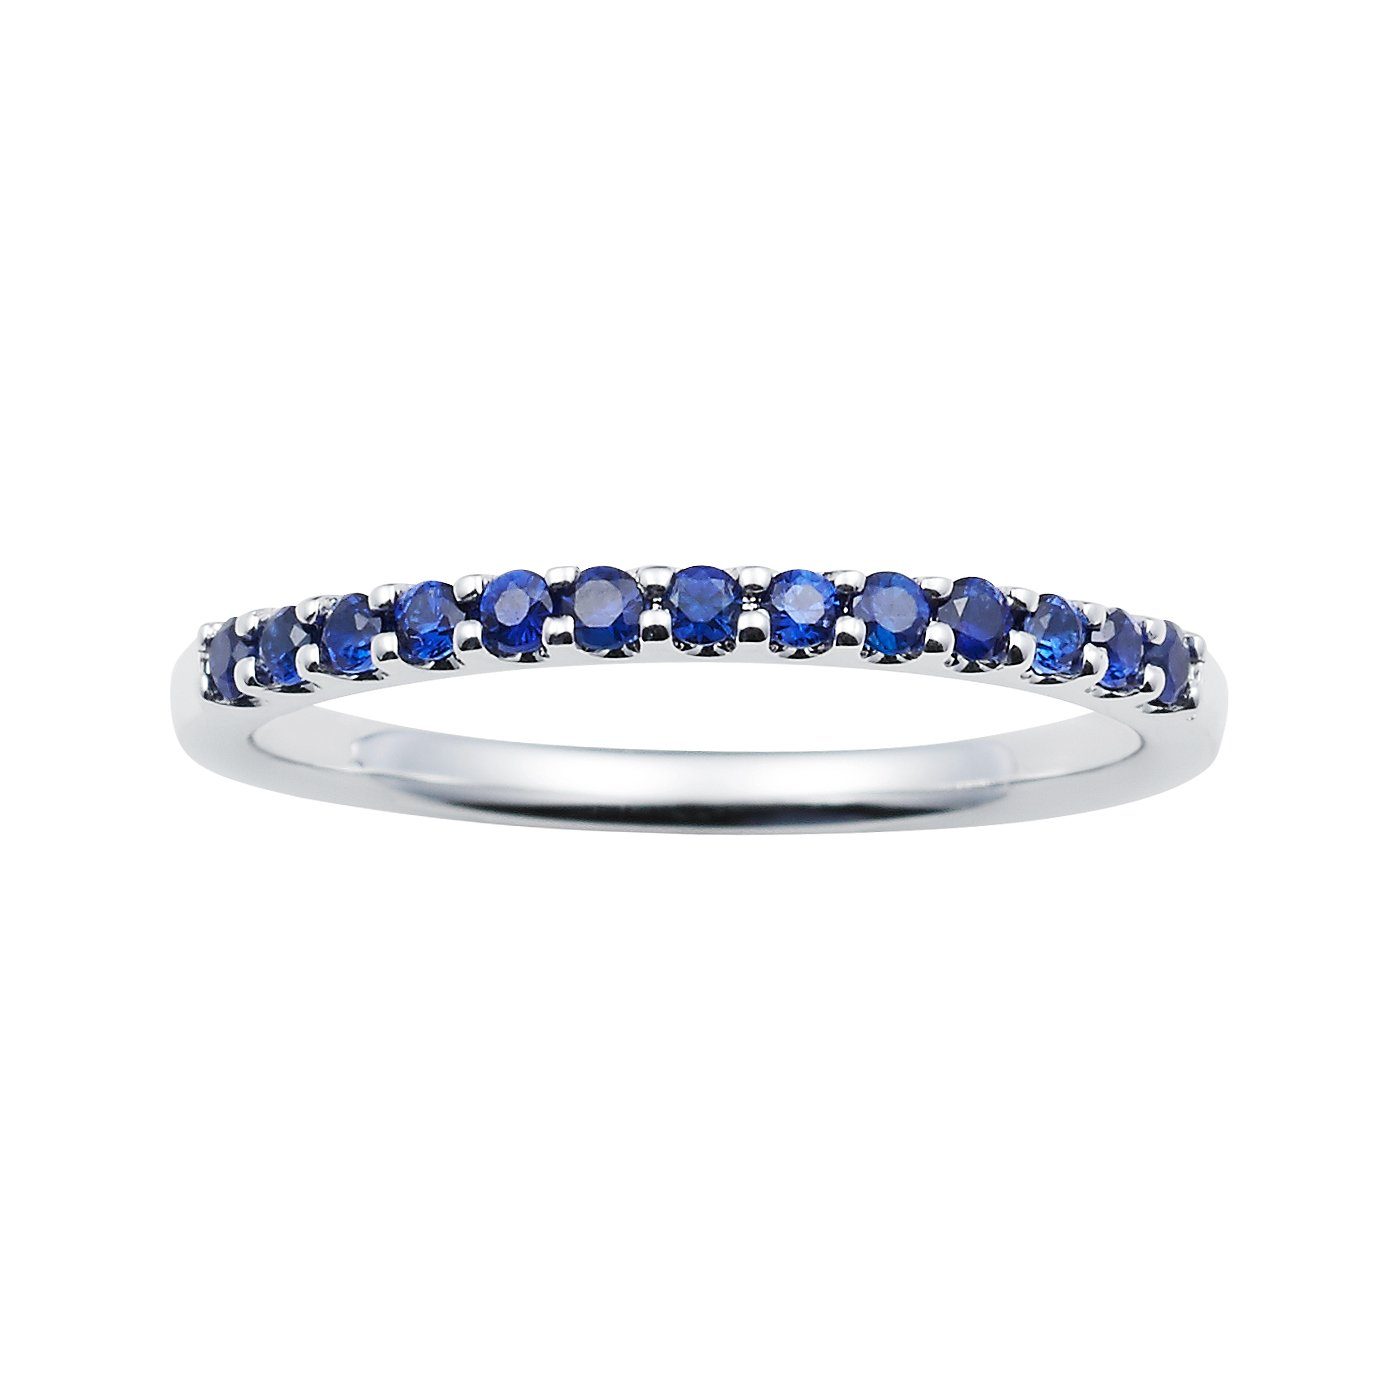 14K White Gold 1.04 Tgw. Blue Sapphire September Birthstone Stackable 2MM Band Ring